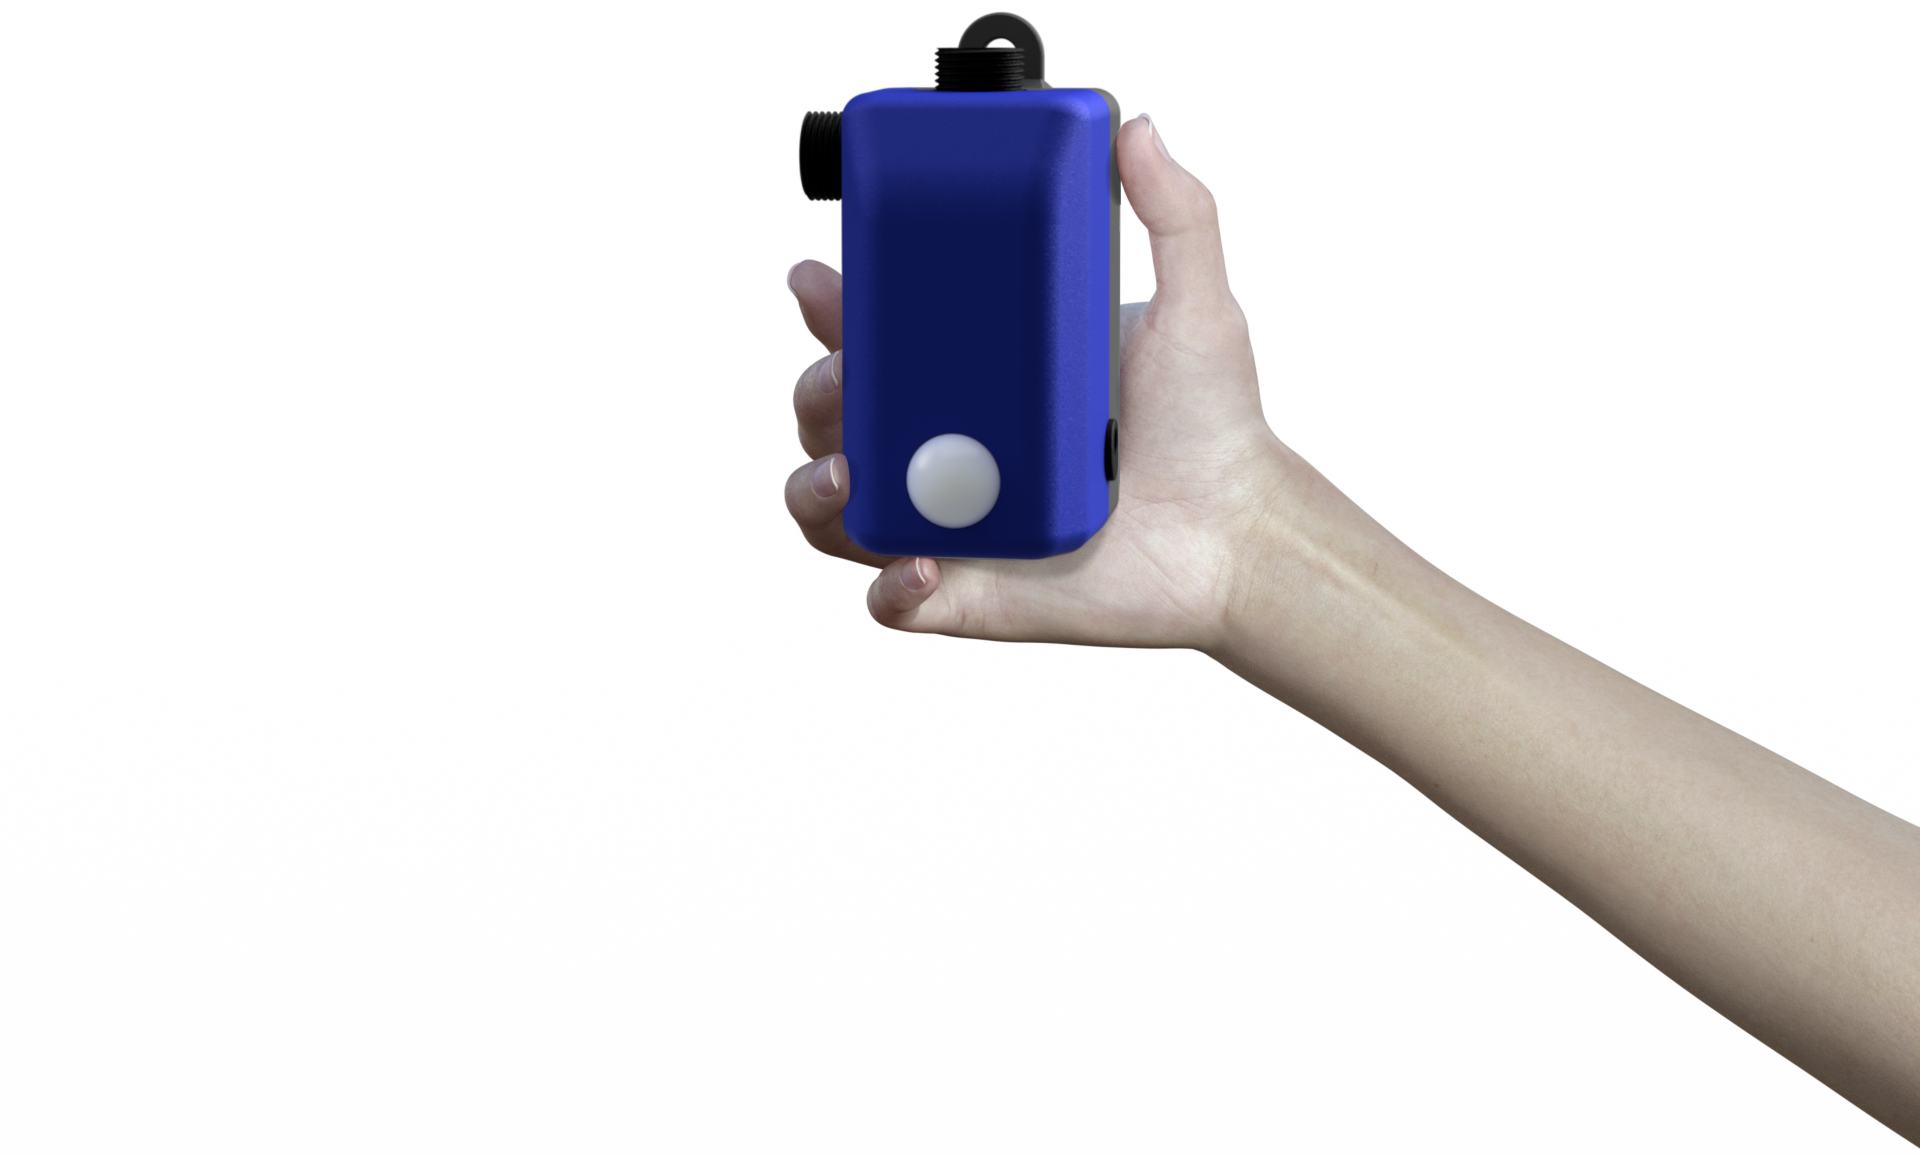 Ava (virtual model) hand holding MARND disinfectant compact pump.